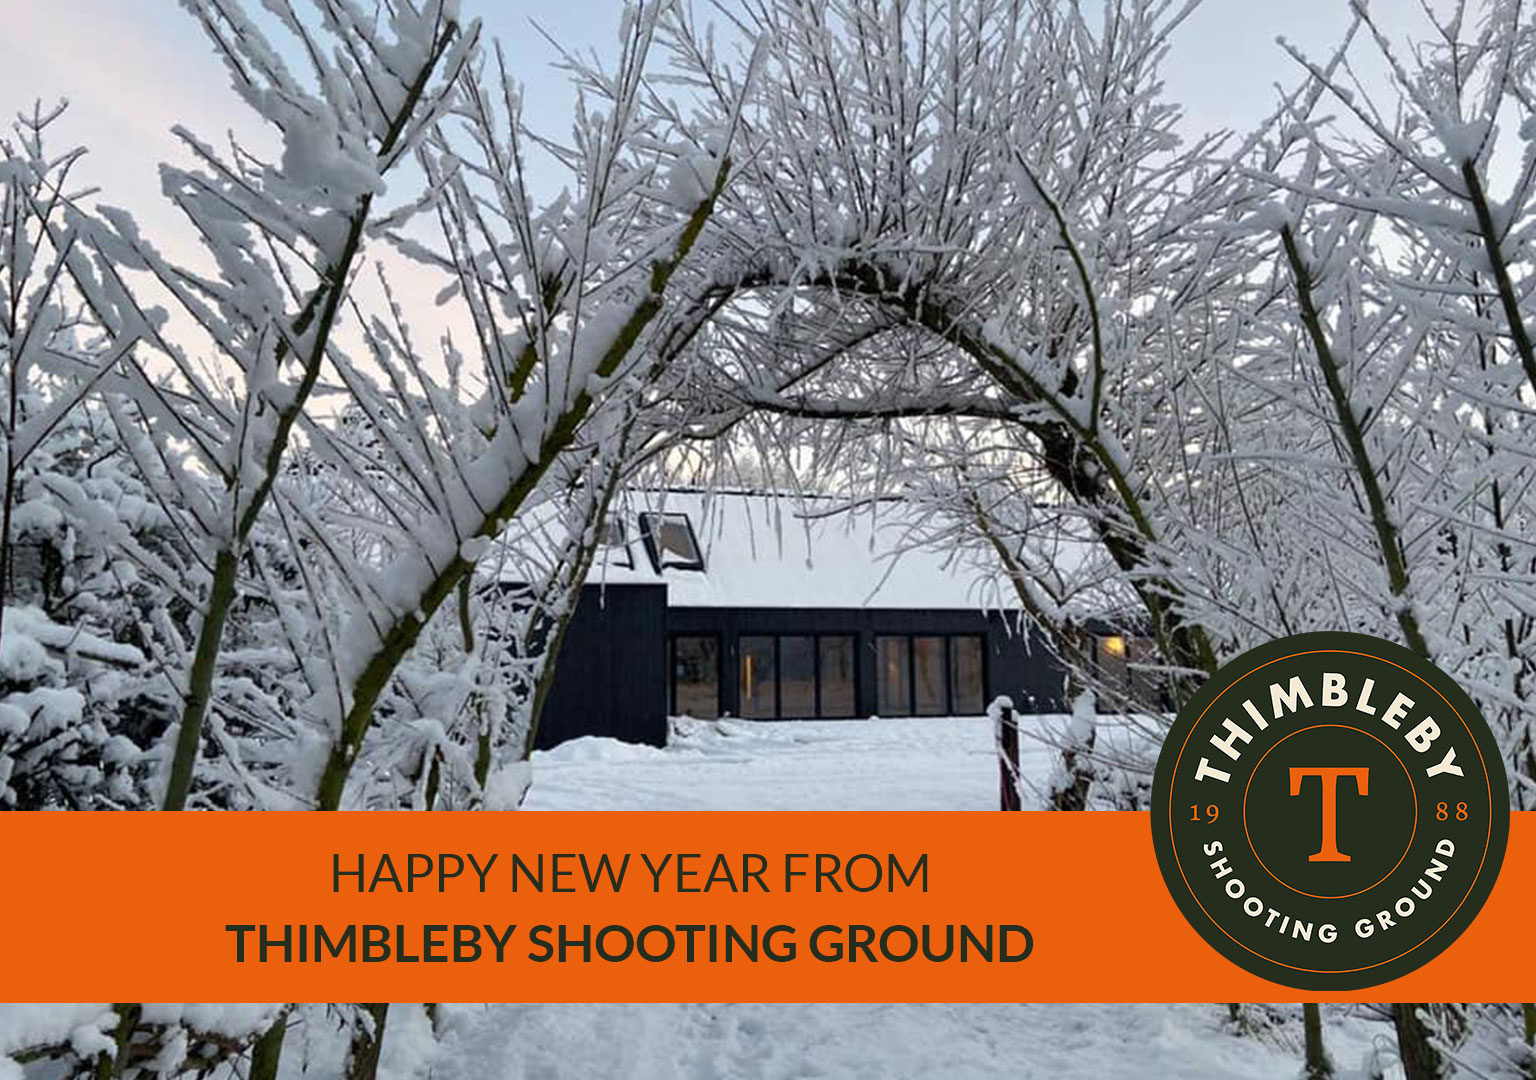 Snowy Clubhouse at Thimbleby Shooting Ground